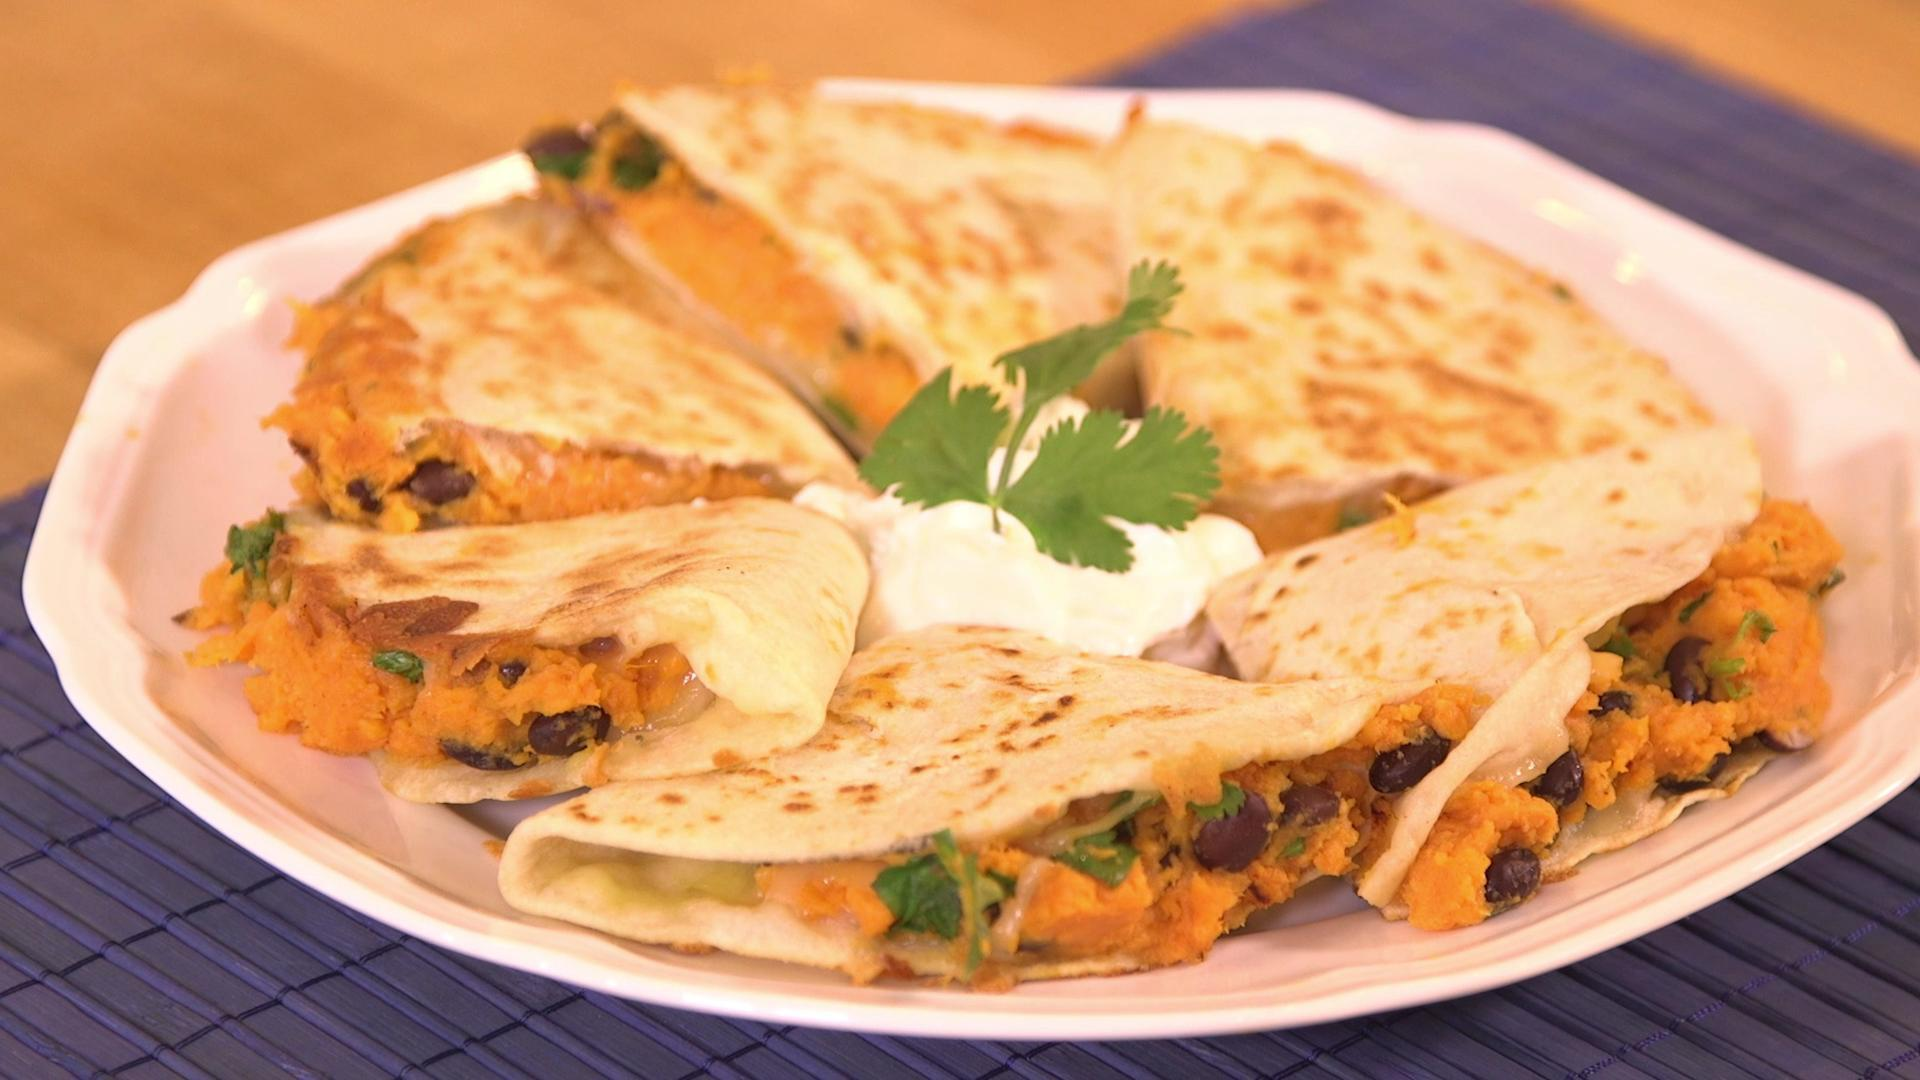 How to Make Hearty Sweet Potato and Chipotle Quesadillas